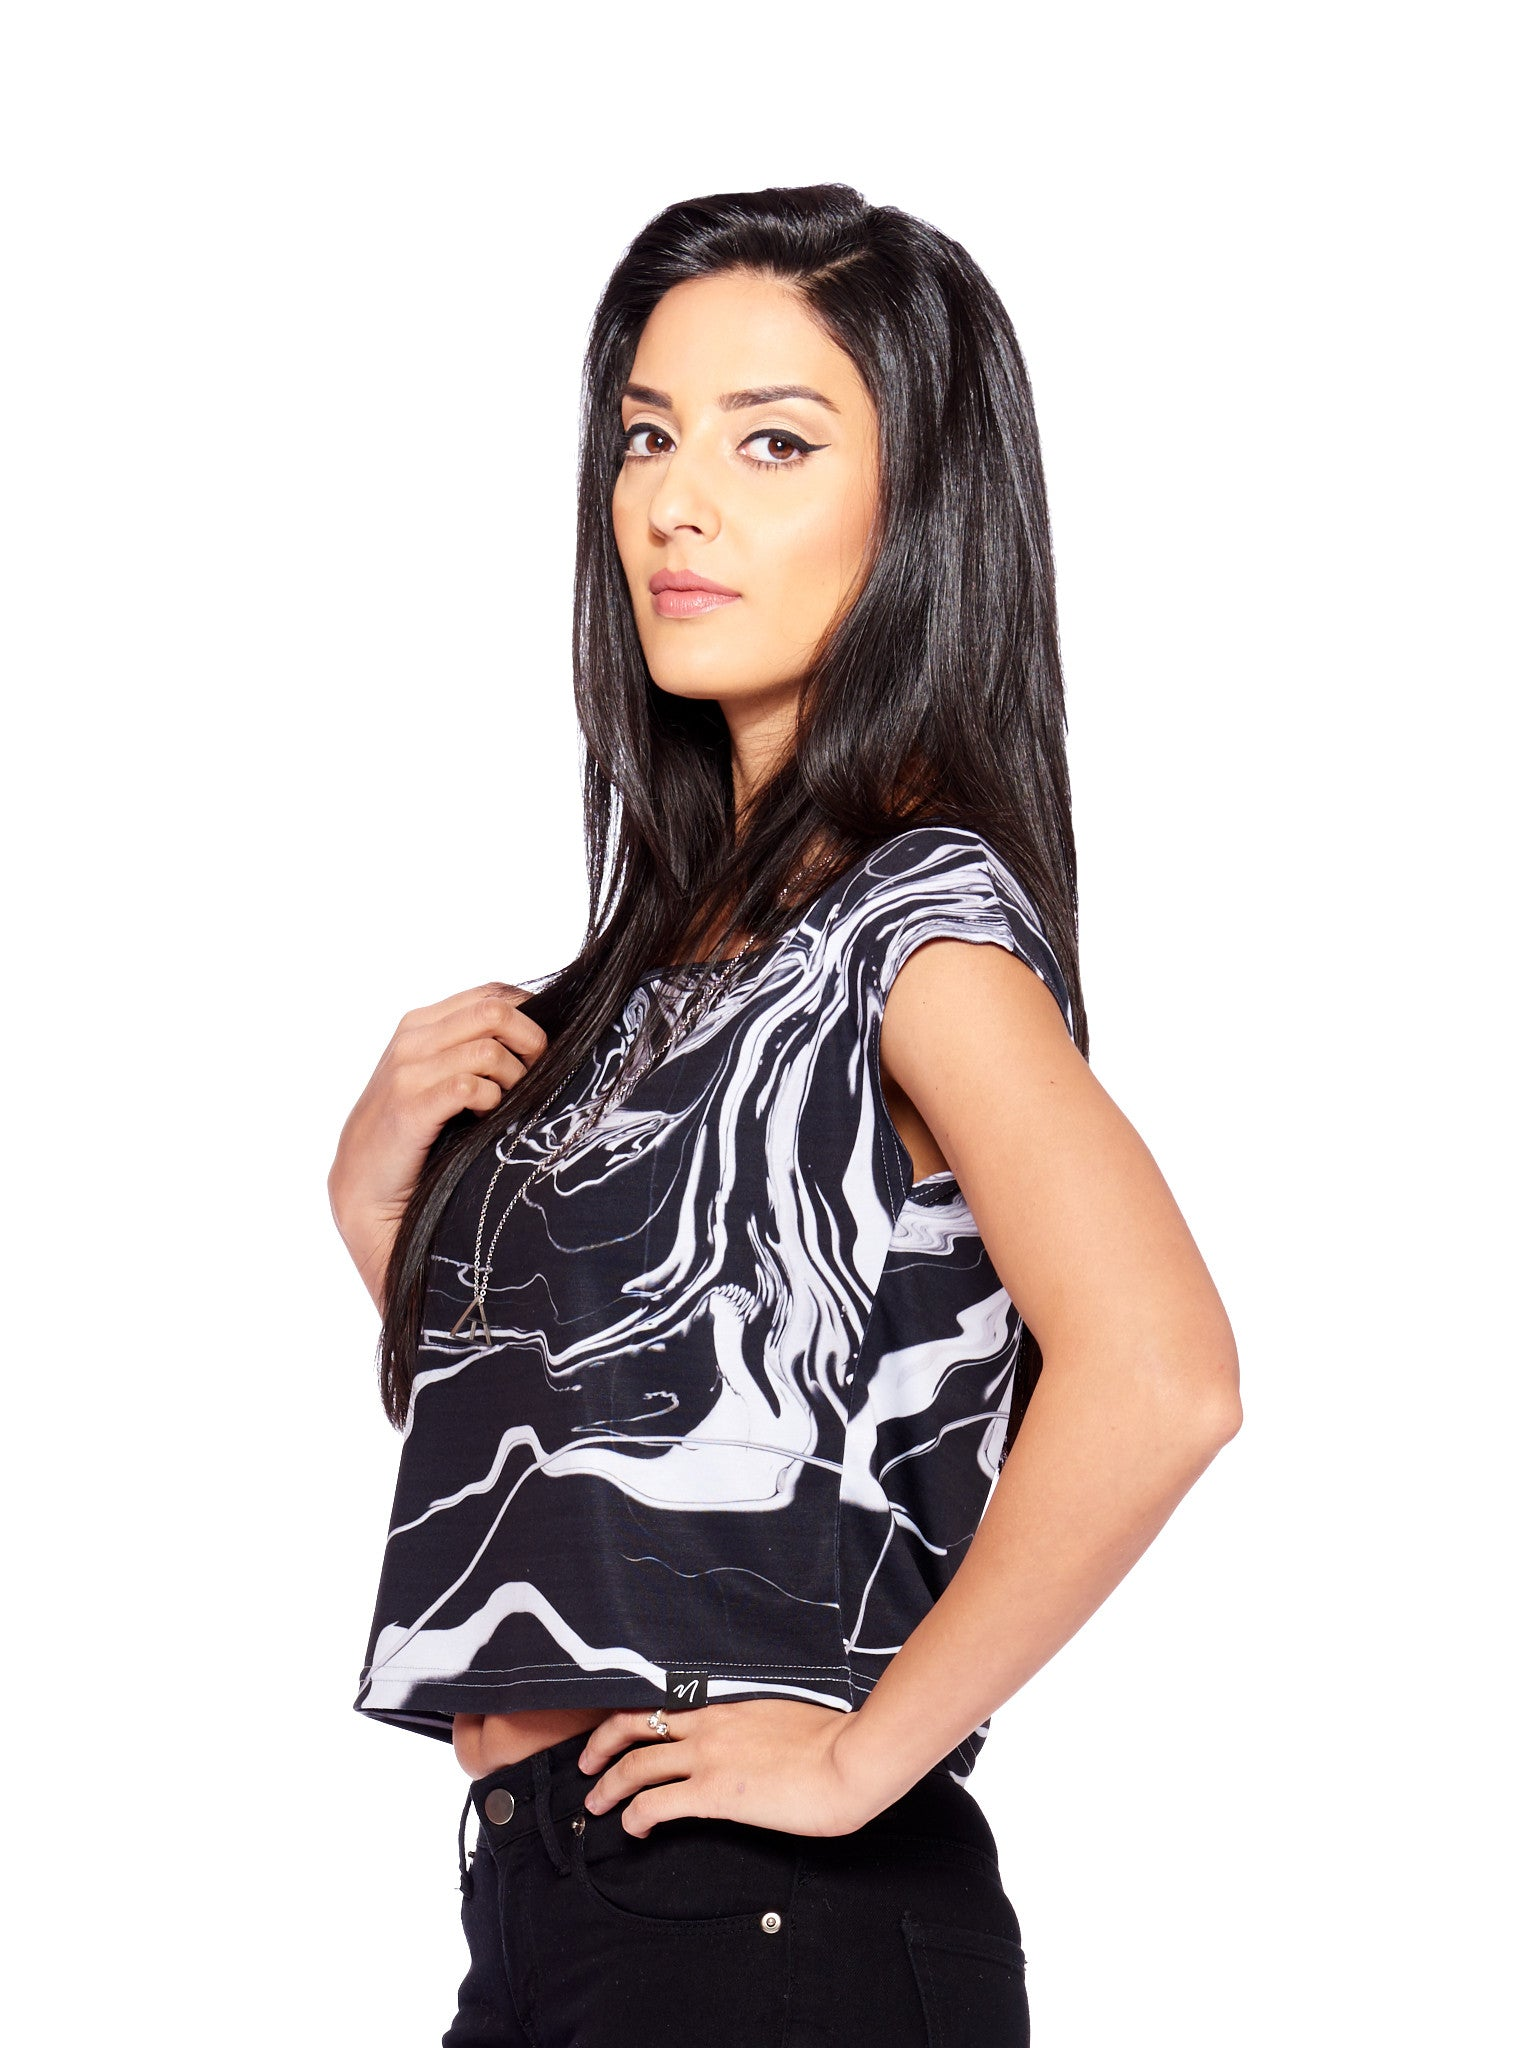 Eloquence Women's Crop Top - Nuvango Gallery & Goods - 1